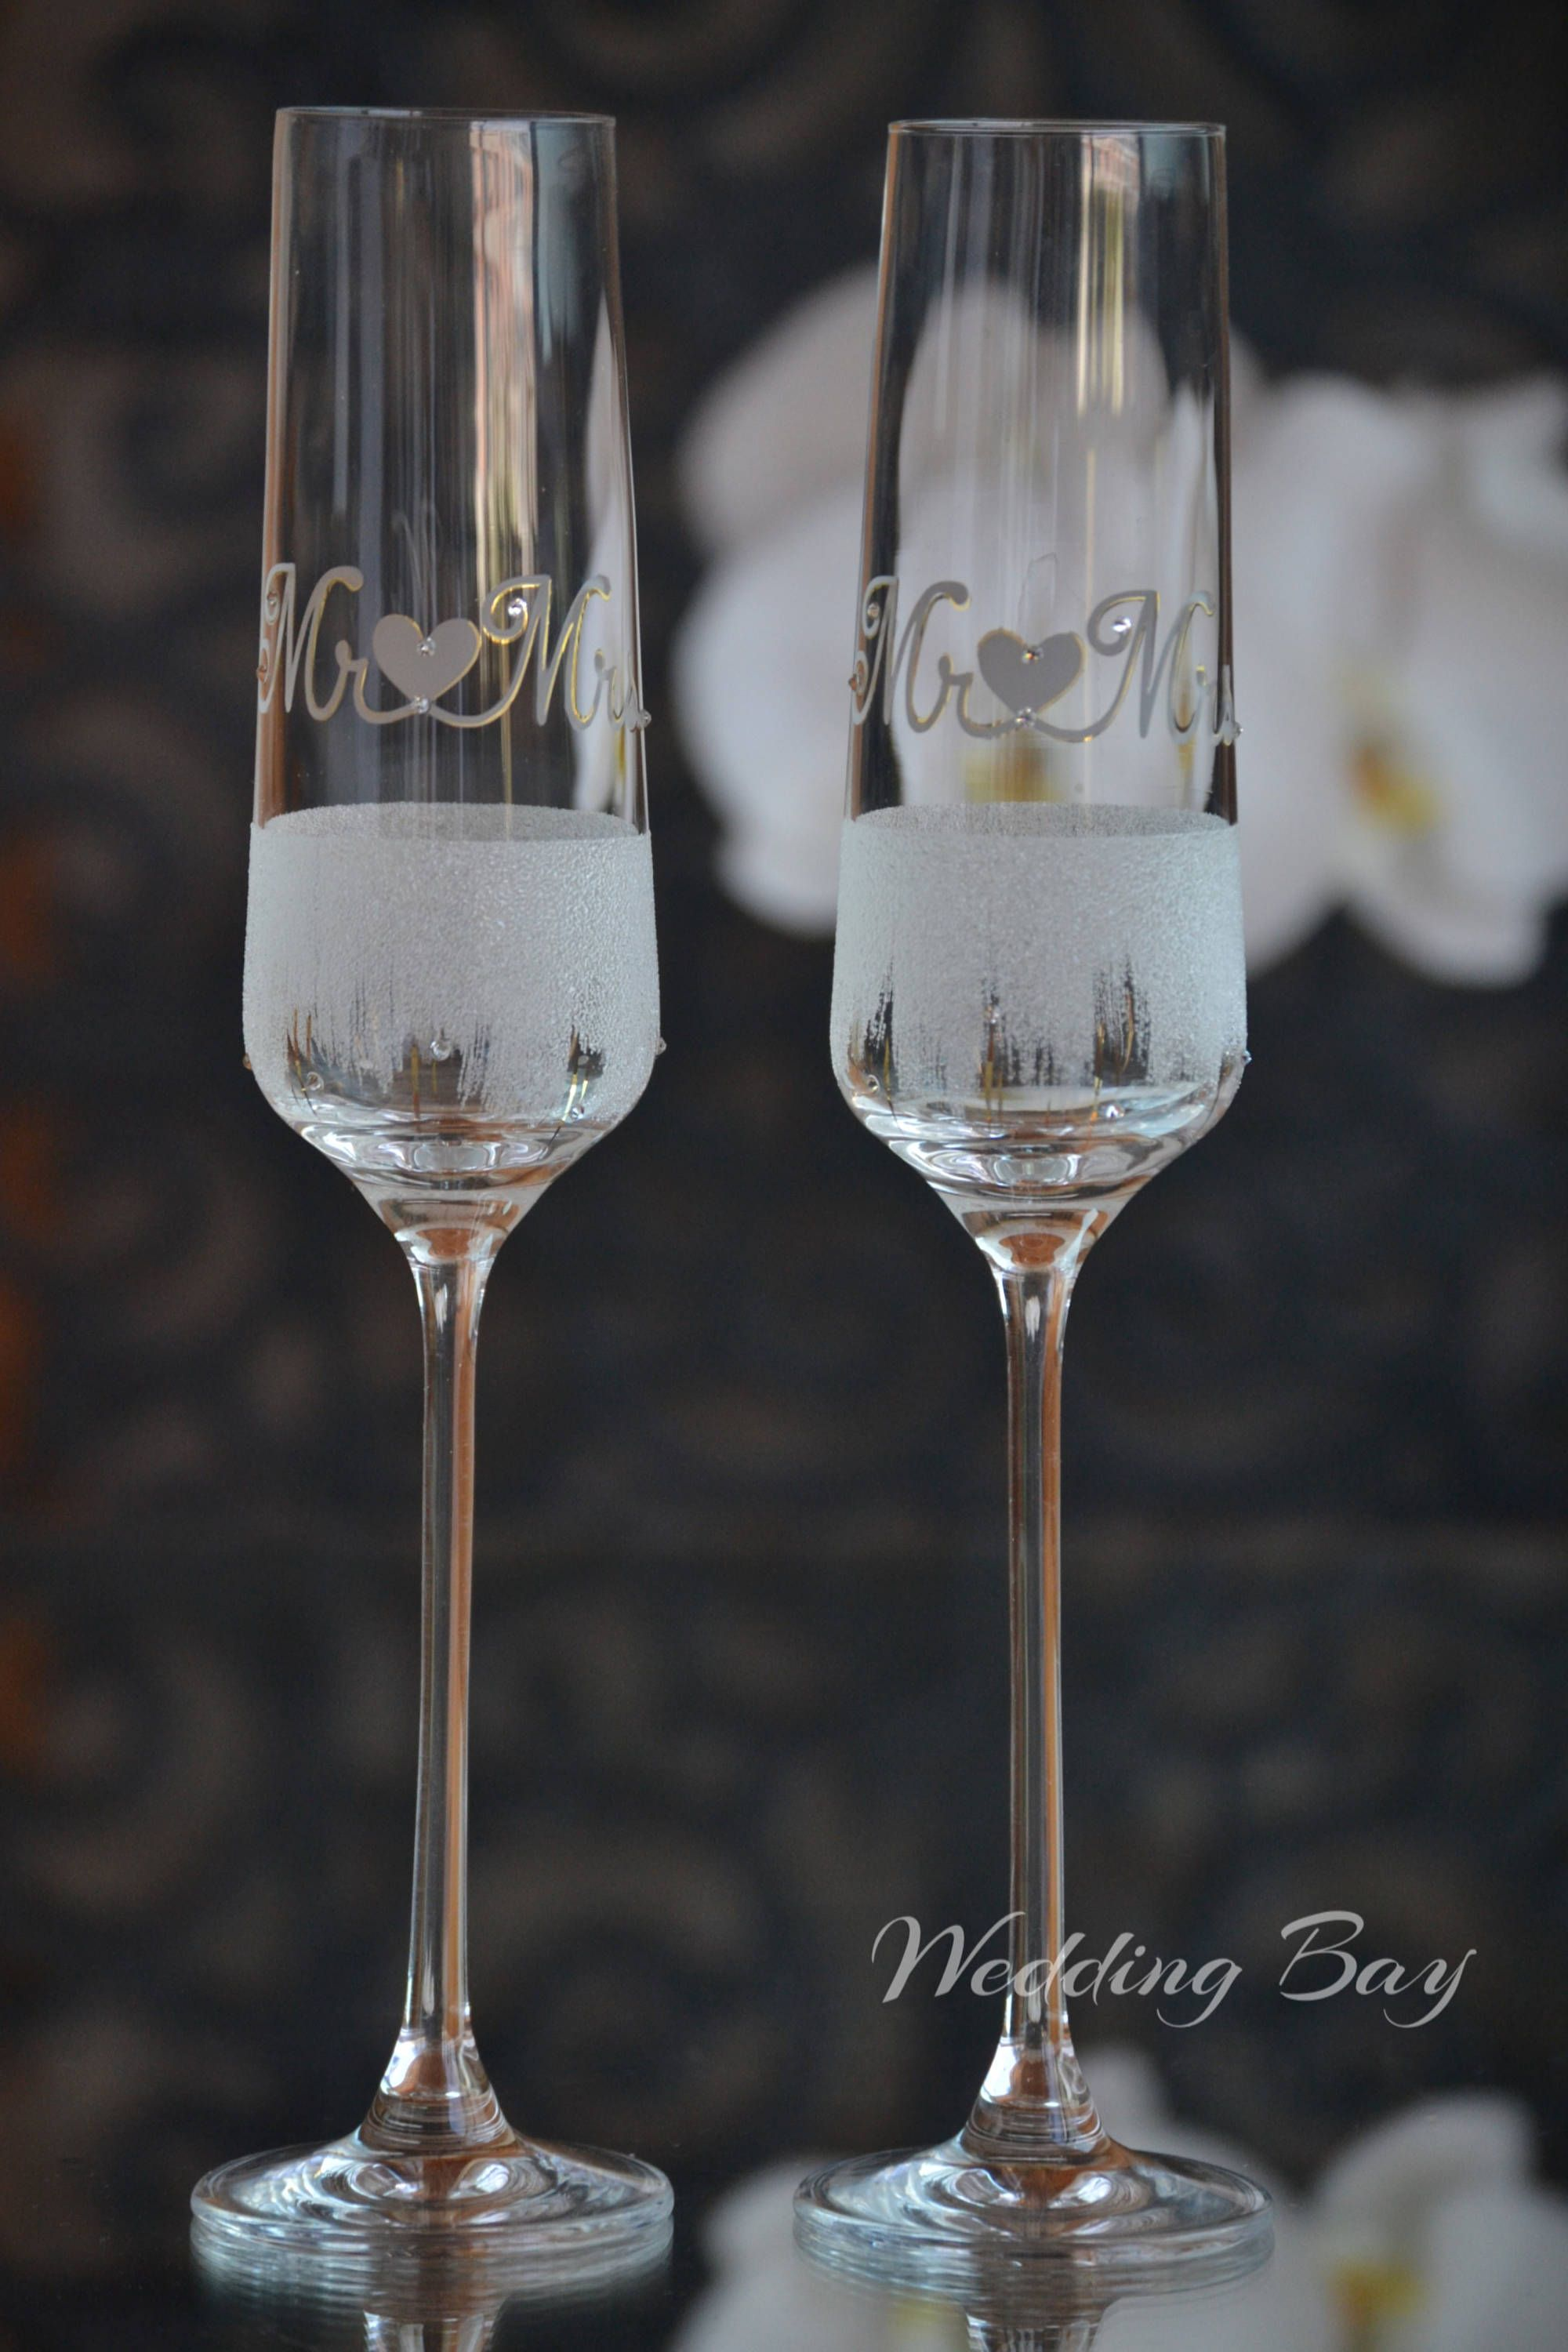 Wedding Champagne Glasses Hand Painted Toasting Flutes Frosted Glasses Mr And Mrs Persona Wedding Glasses Wedding Champagne Glasses Wedding Toasting Glasses